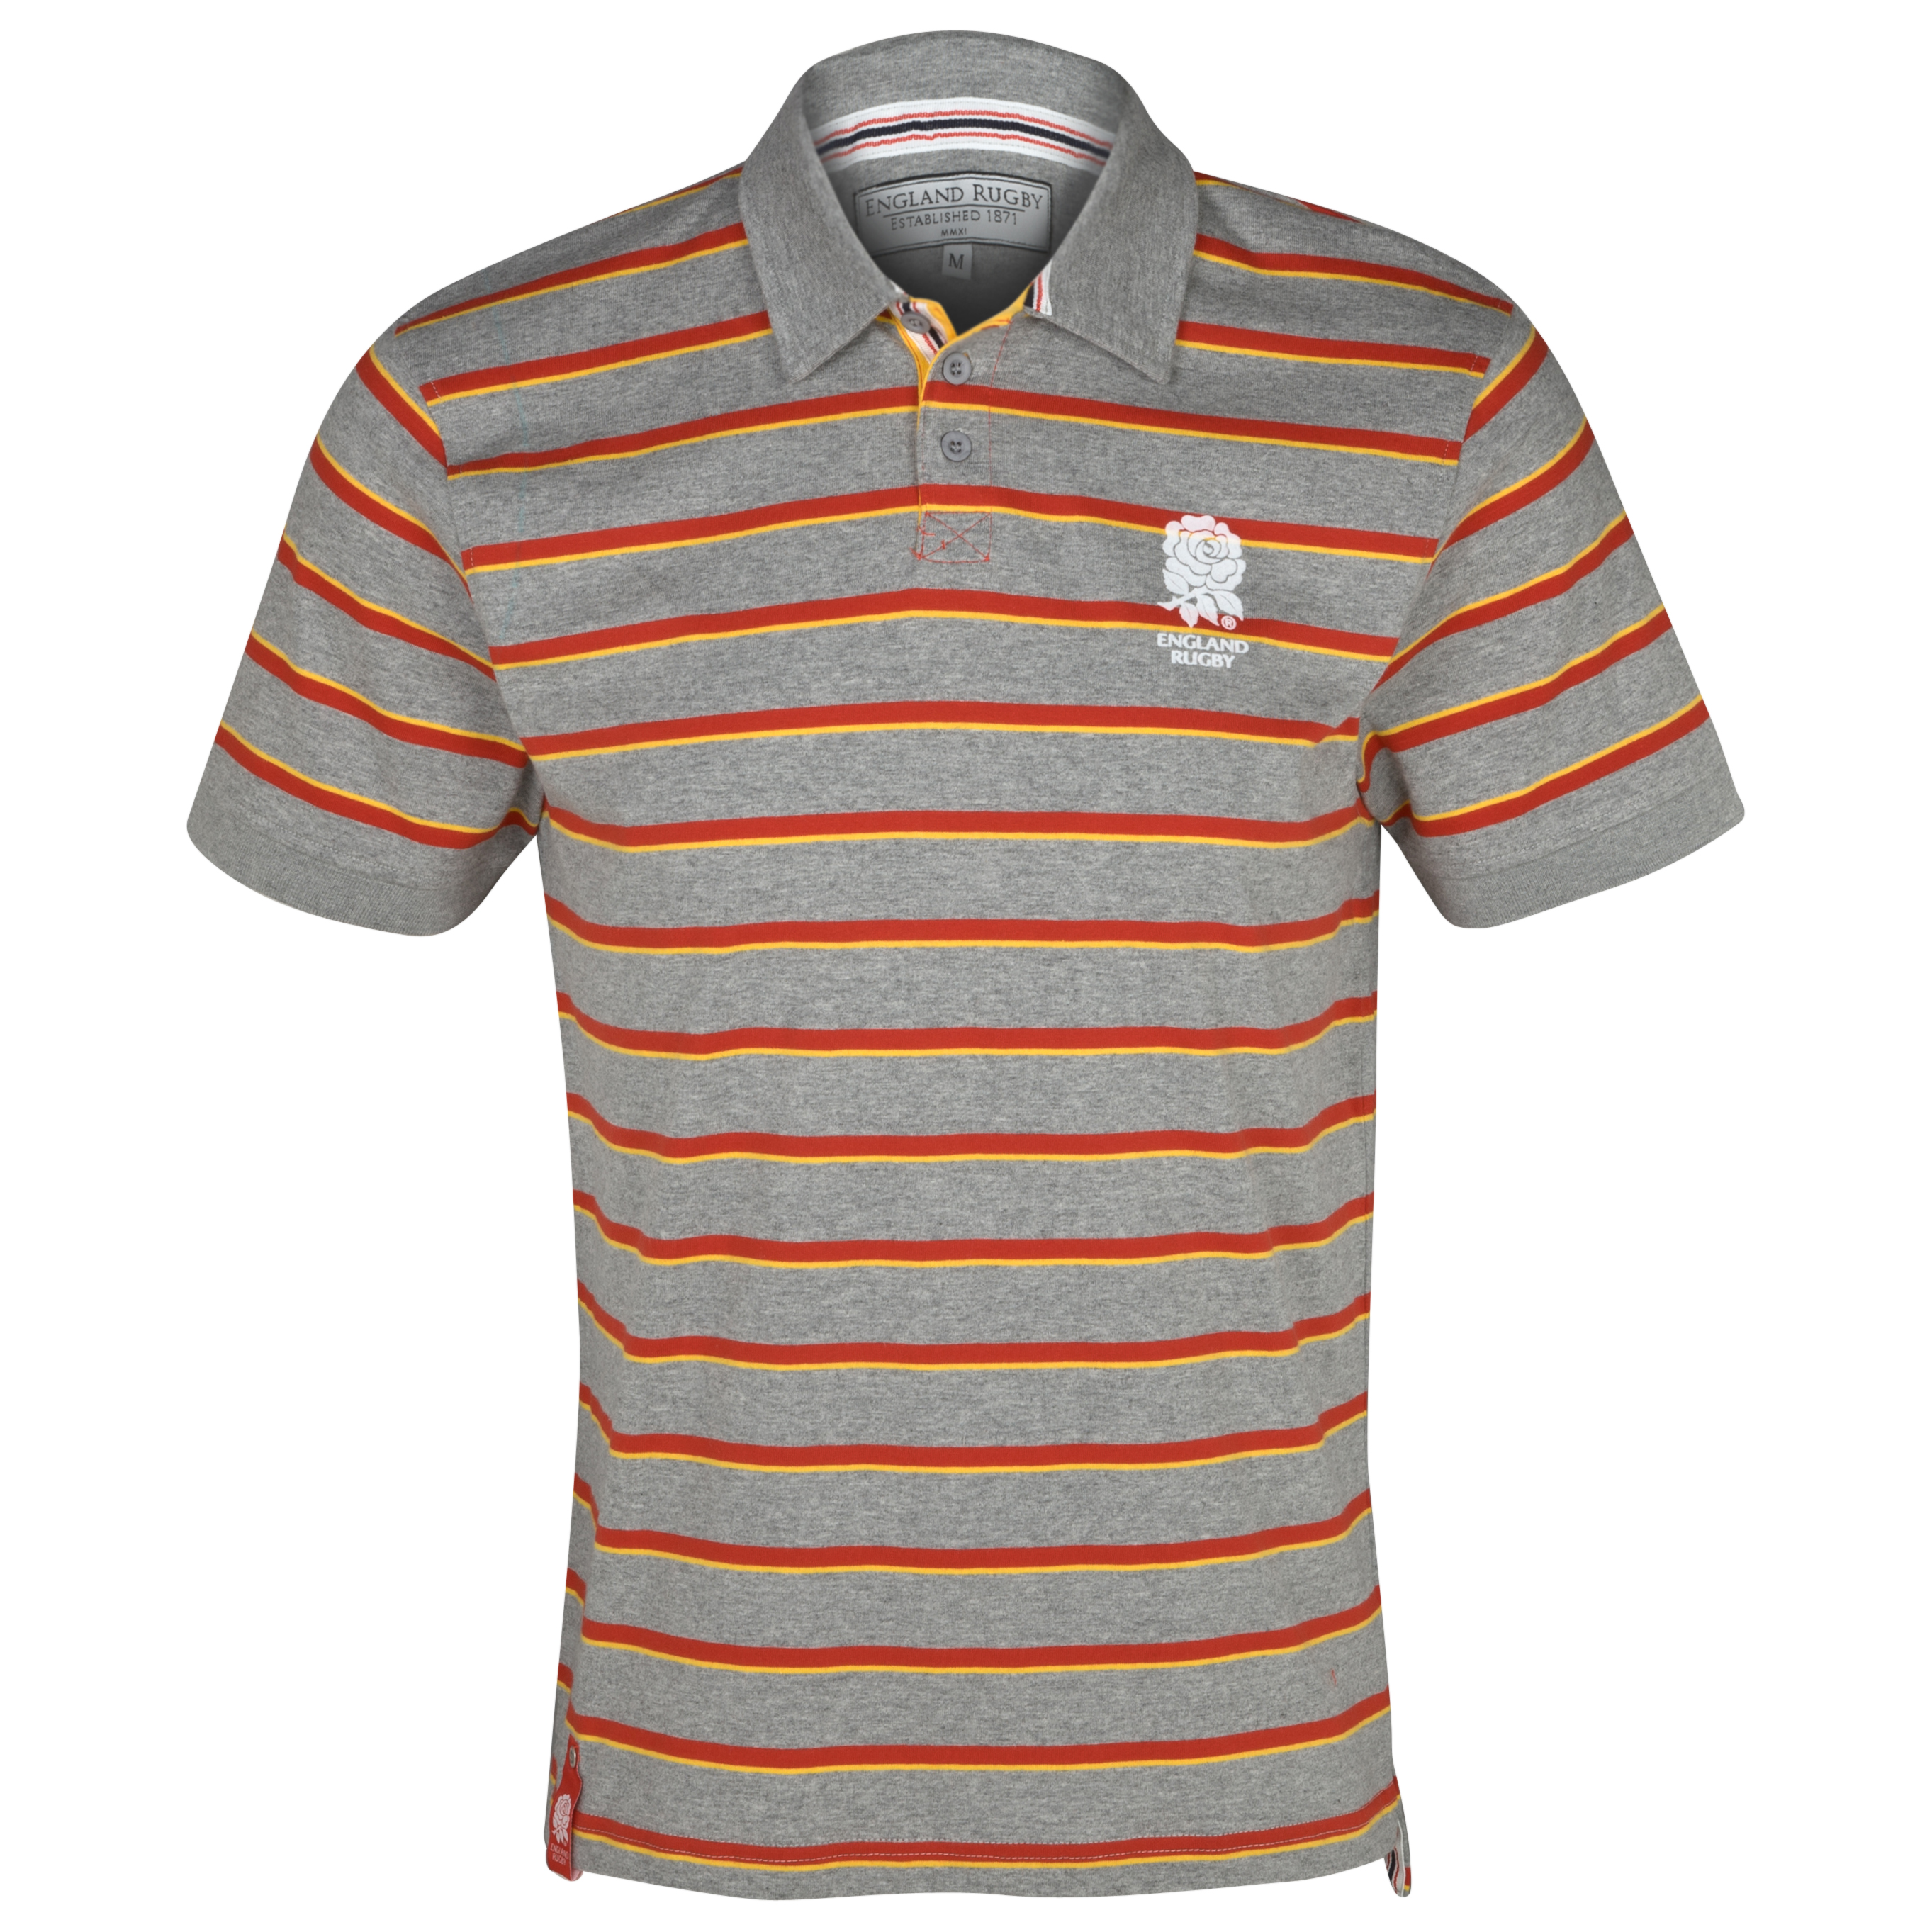 England Rugby SS Feeders Stripe Polo - Multi